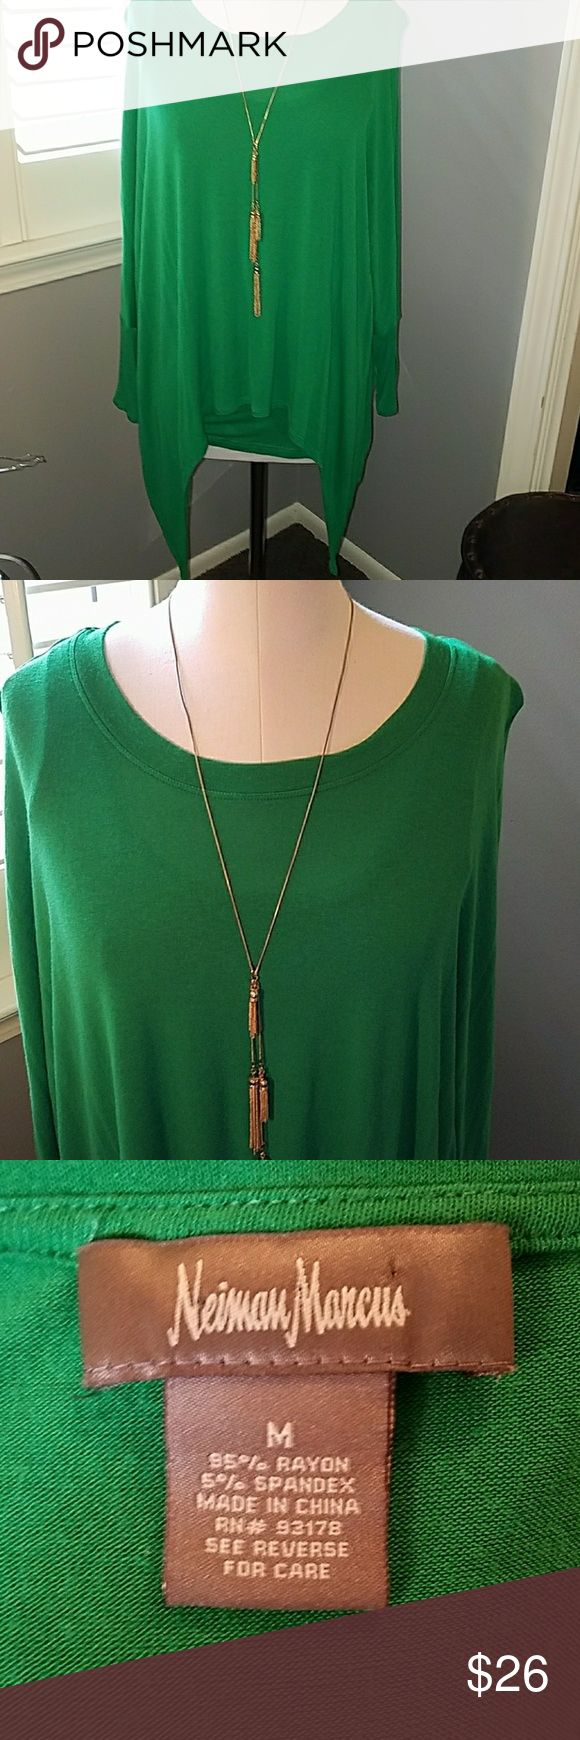 """Neiman Marcus Sharkbite hem, batwing sleeves M Built in tank under webbed arms and sharkbite hemline. Kelly green, rayon/spandex knit blend. (necklace not for sale) Measurements for the tank part of the top taken laying flat without stretching. Armpit to armpit 15.5"""", waist 14.25"""", hips/hemline 18.25"""", length from top of shoulder to hemline 29.5"""" Neiman Marcus Tops"""